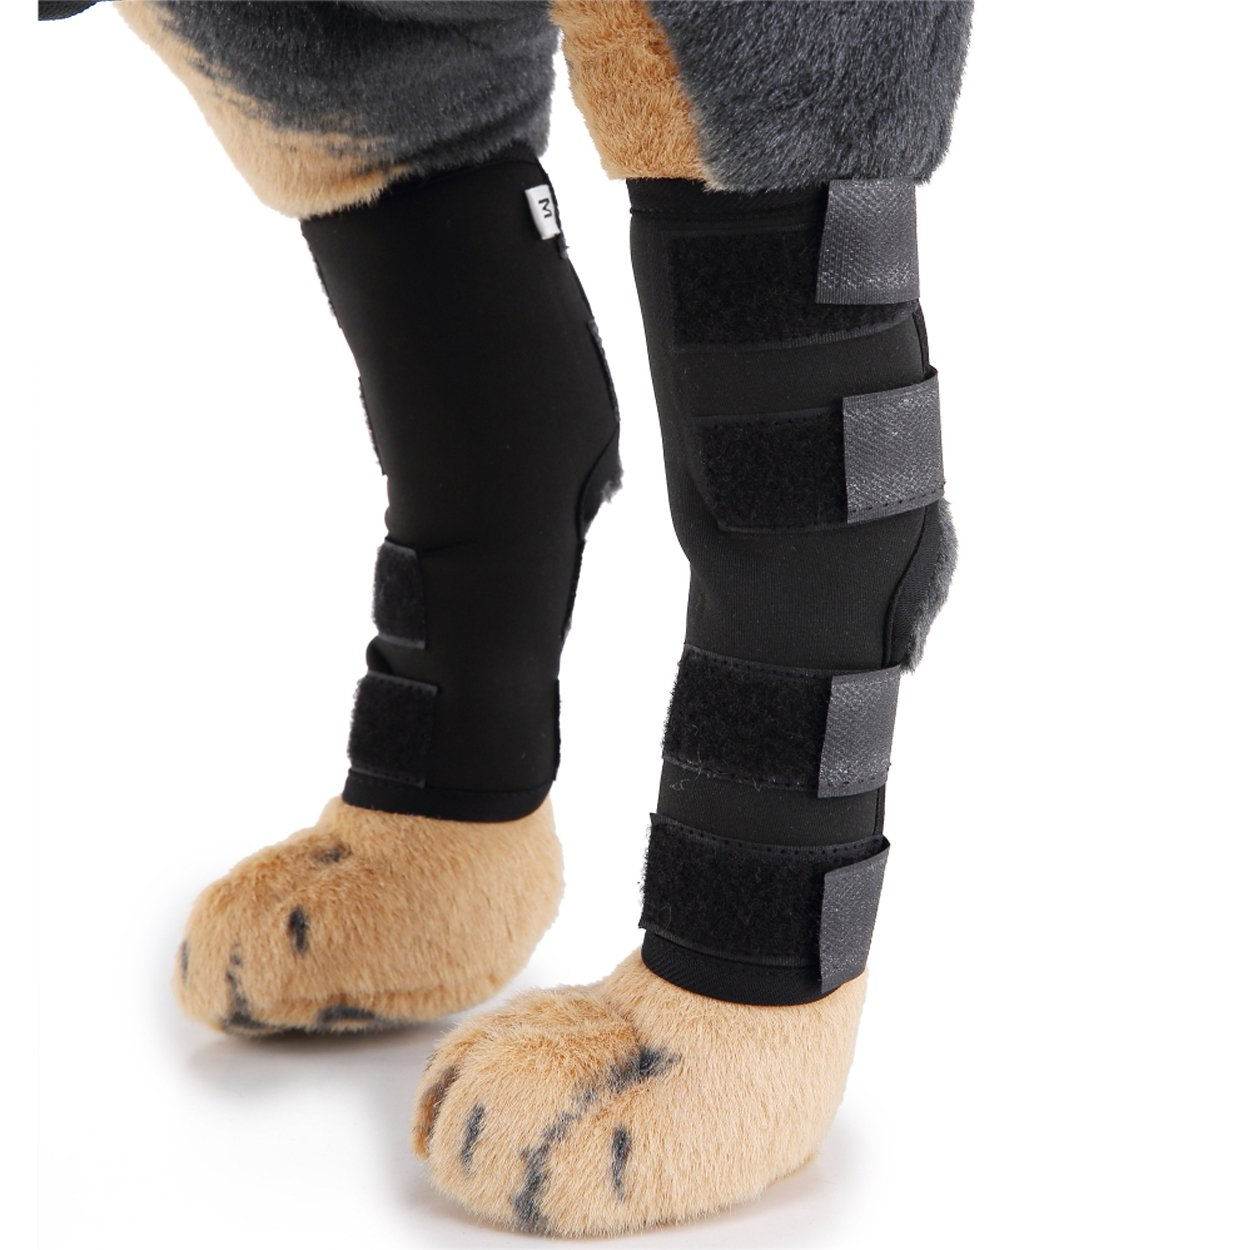 s-lifeeling Dog Knee Brace for Torn Acl Hind Back Leg Dog Canine Protector Rear Leg Hock Joint Wrap Protects Compression Sleeves for Injury and Sprain Protection